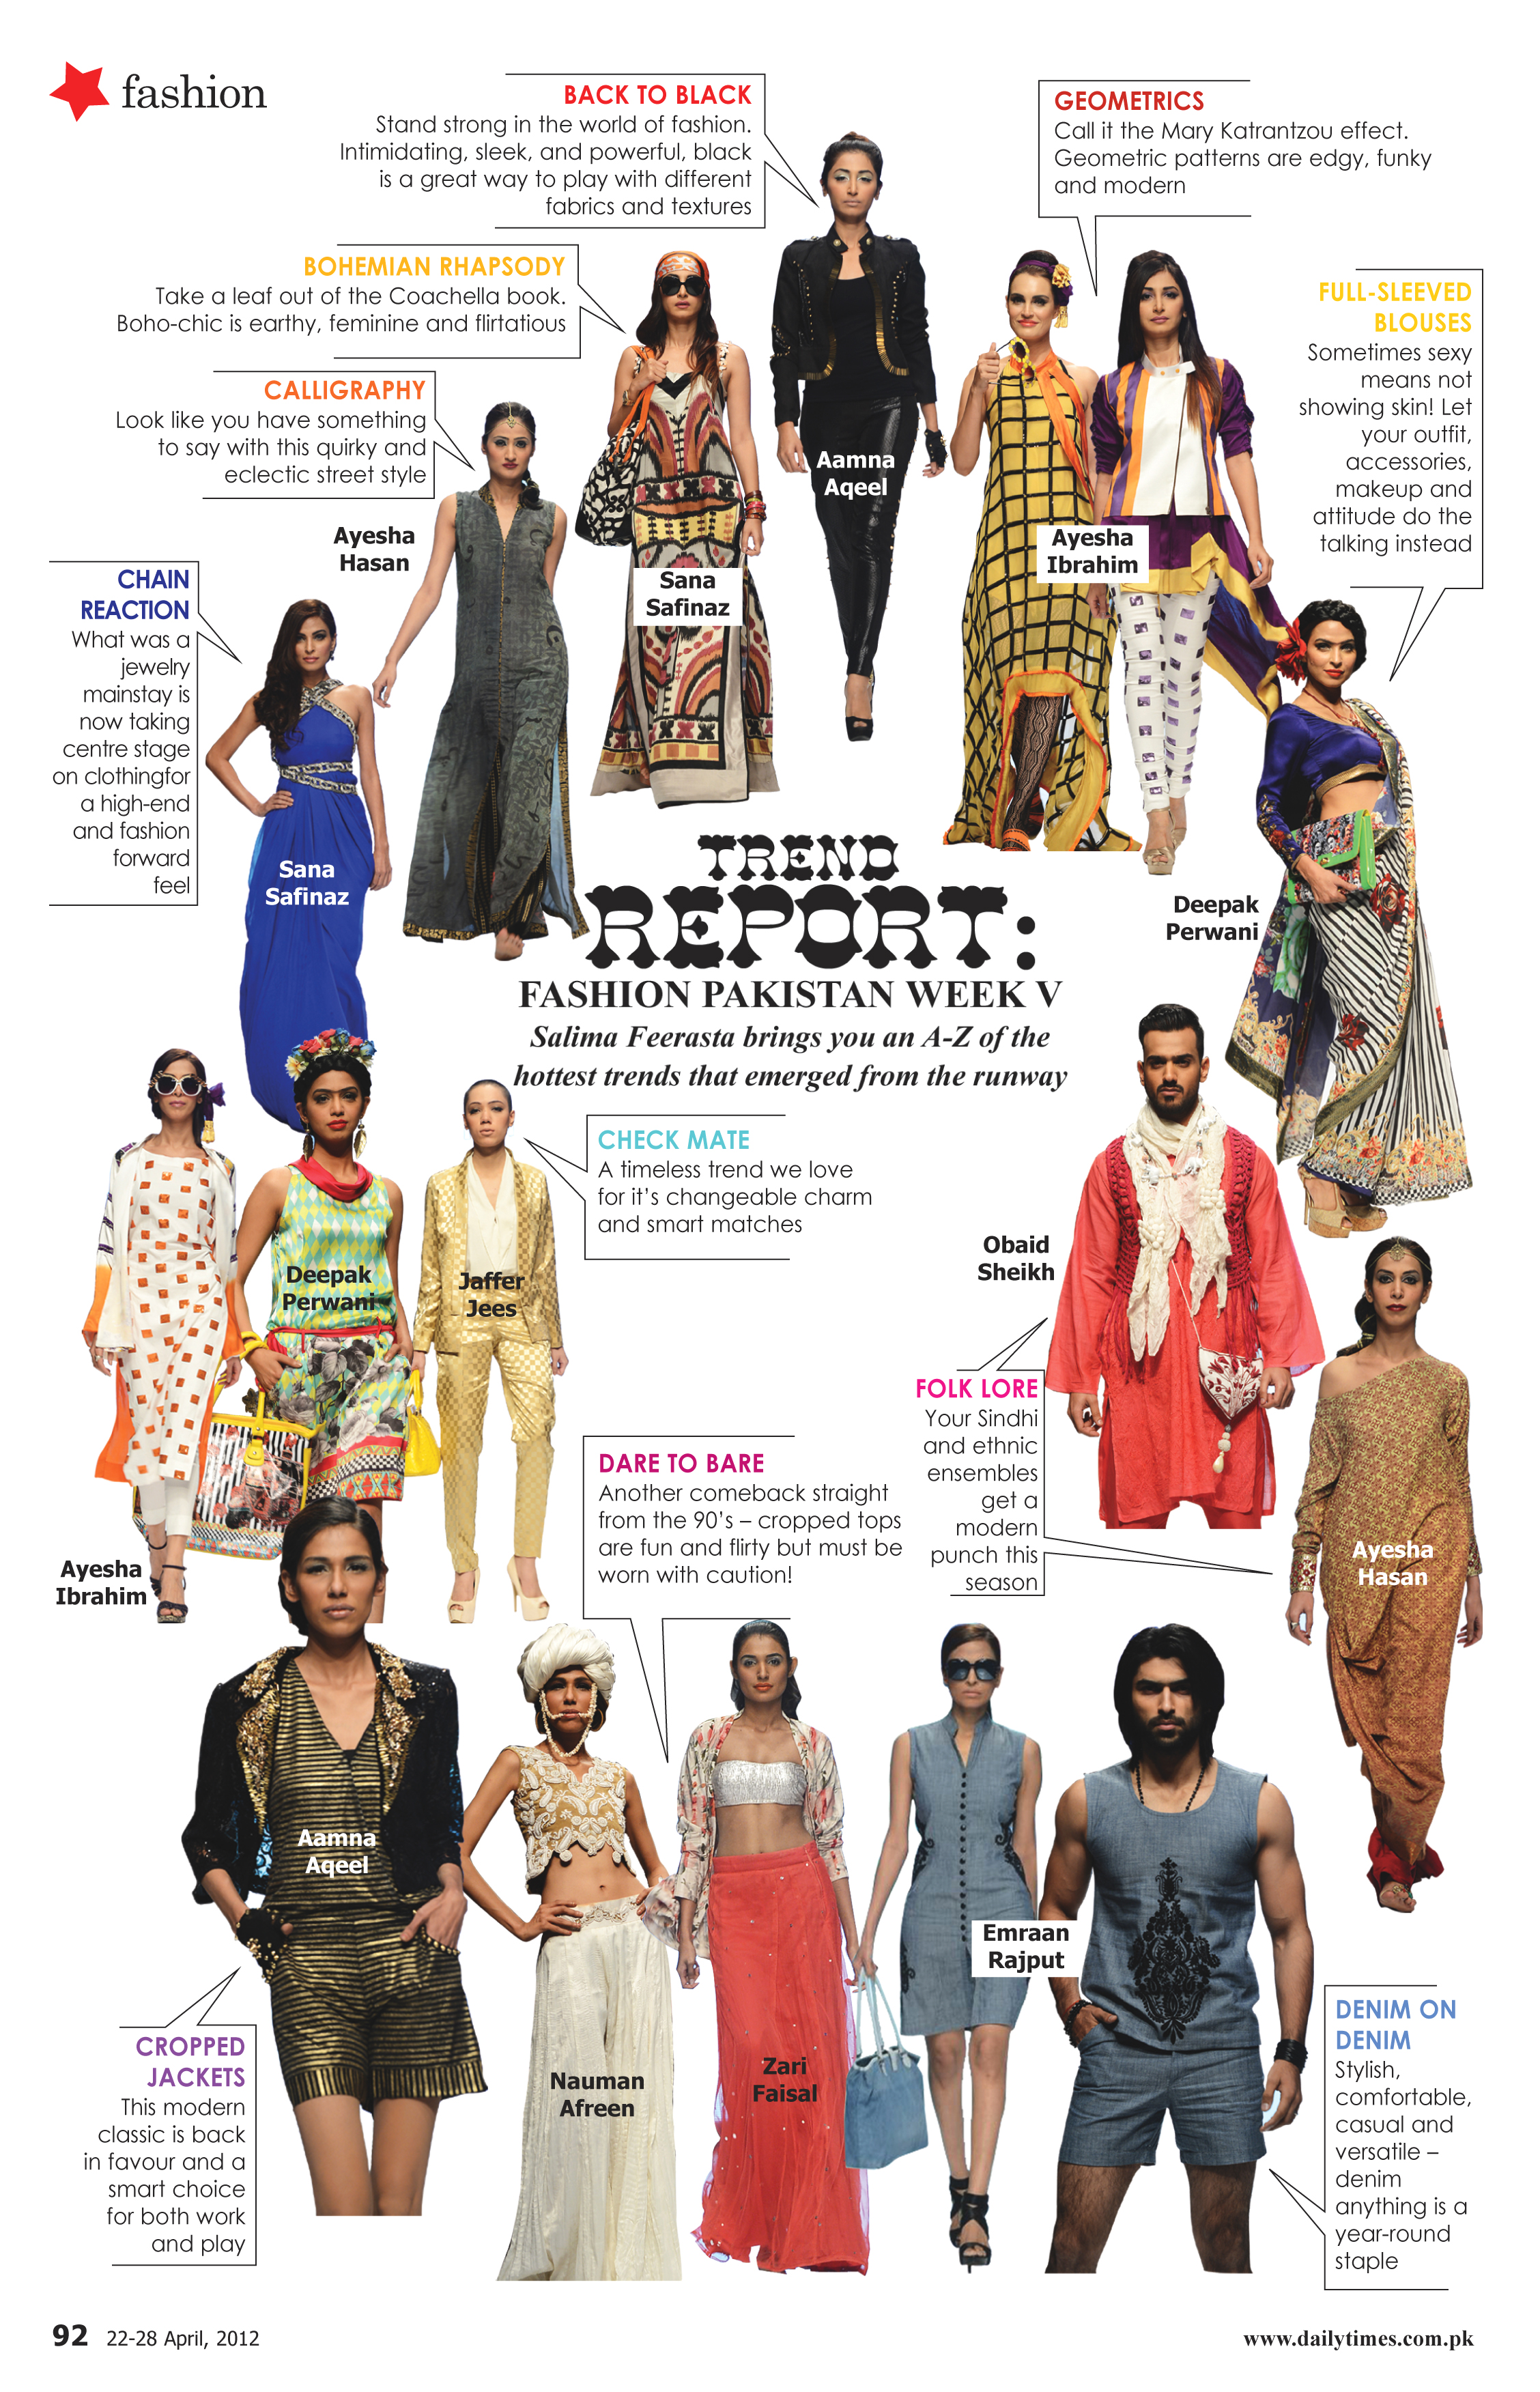 We Love Sunday Magazine S Trend Report On Fashion Pakistan